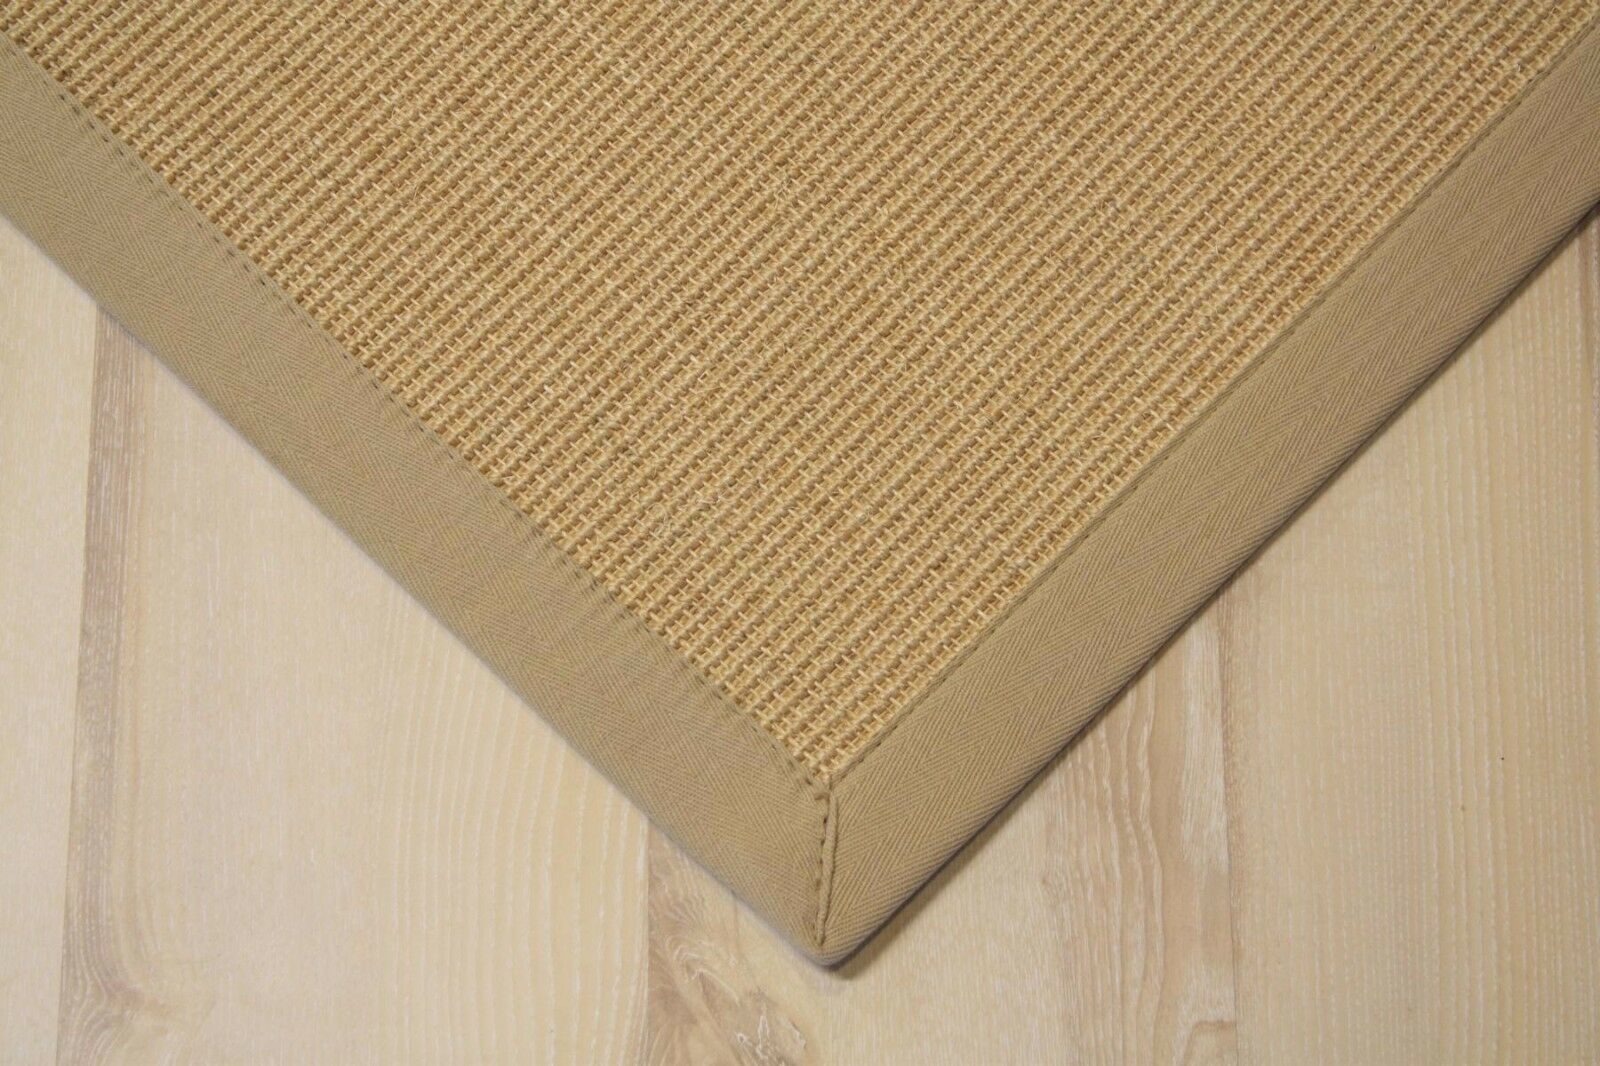 Esszimmer Teppich 300x400 Sisal Teppich 300x400 Great Simple Teppich X With Teppich X With